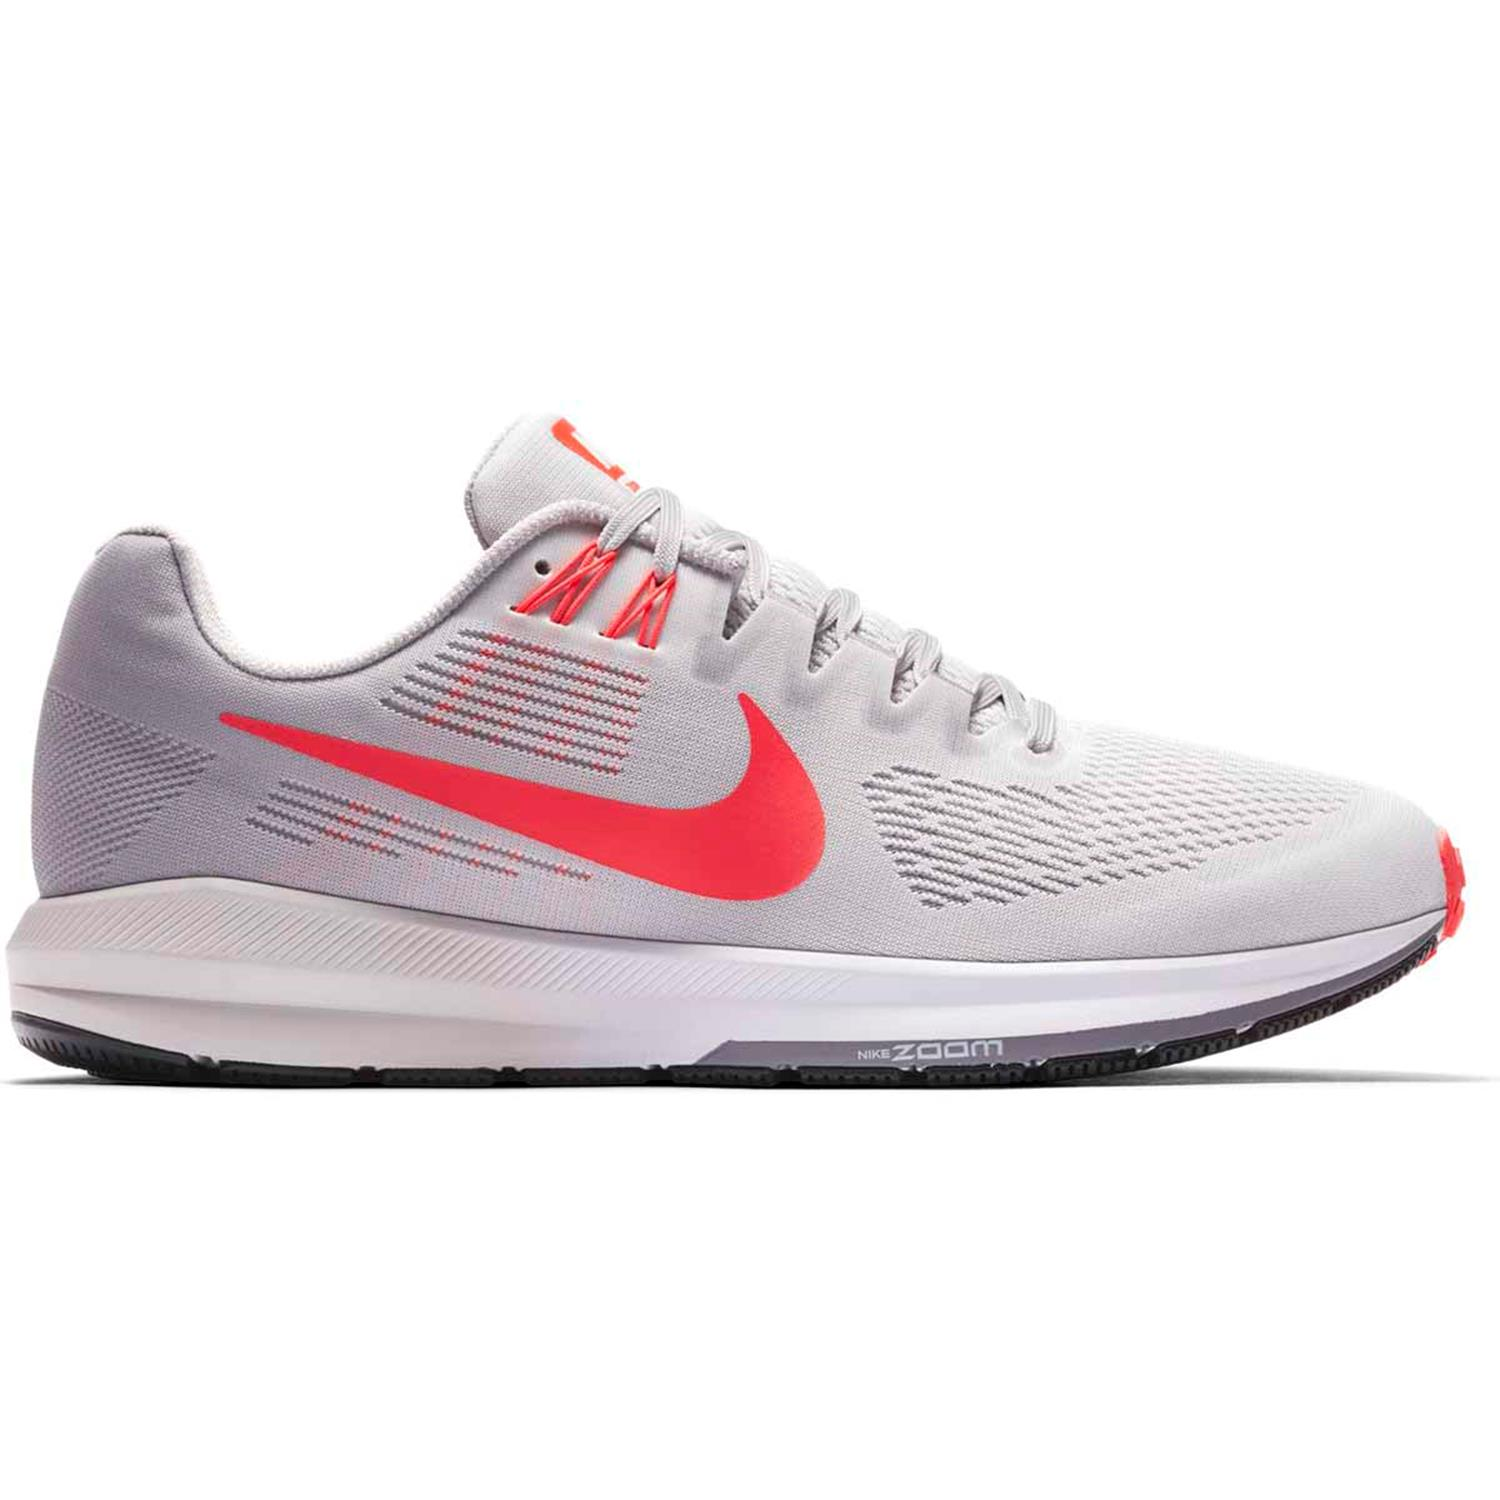 hot sales 10f7b cbdfe Grijs rode Heren Hardloopschoen Nike Air zoom structure 21 - 904695-006